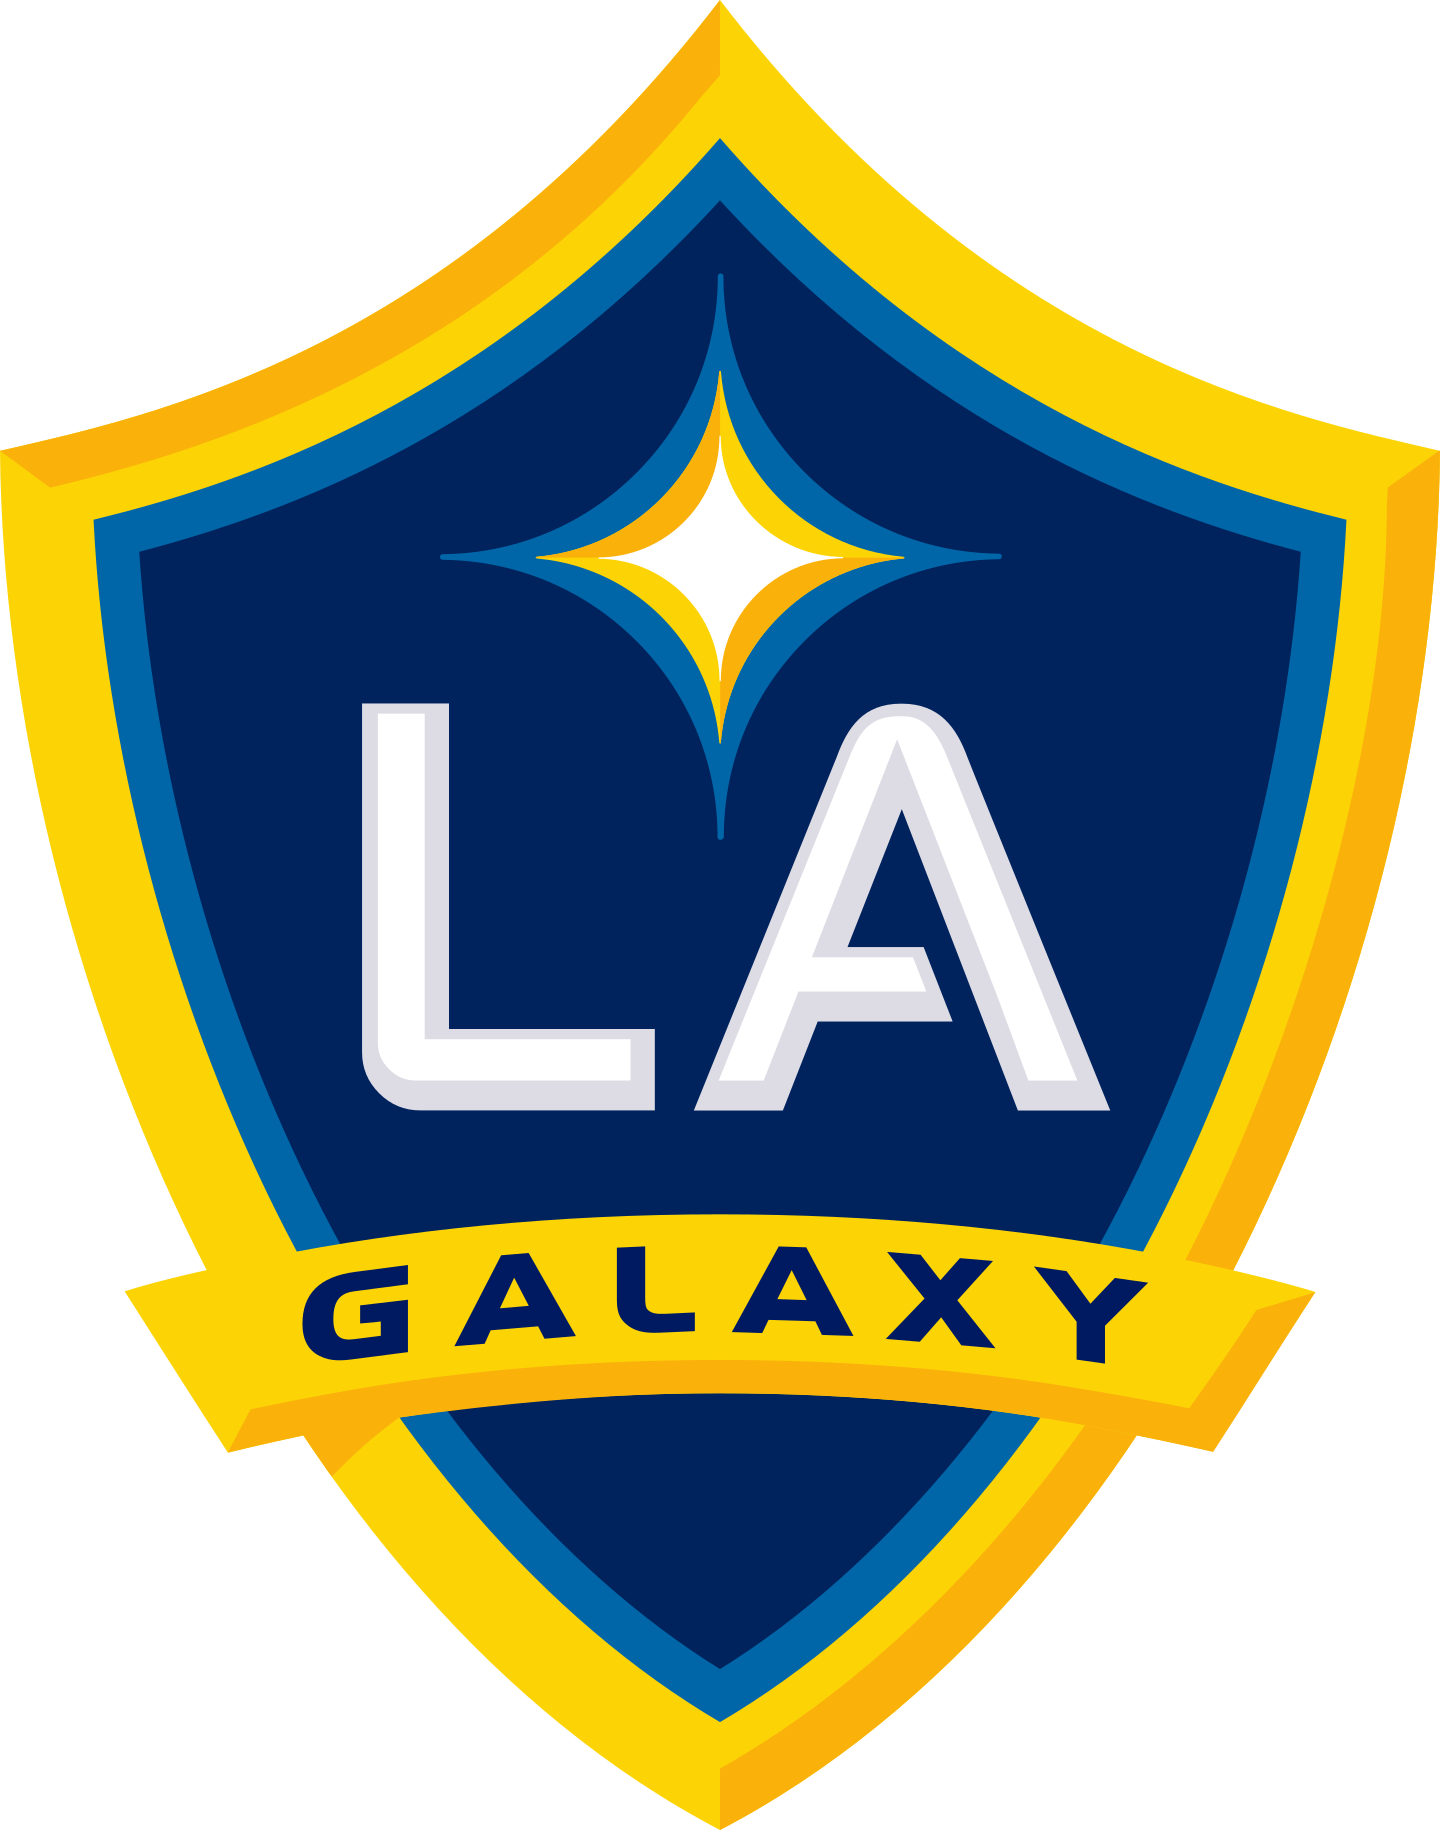 los angeles galaxy logo 2 - LA Galaxy Logo